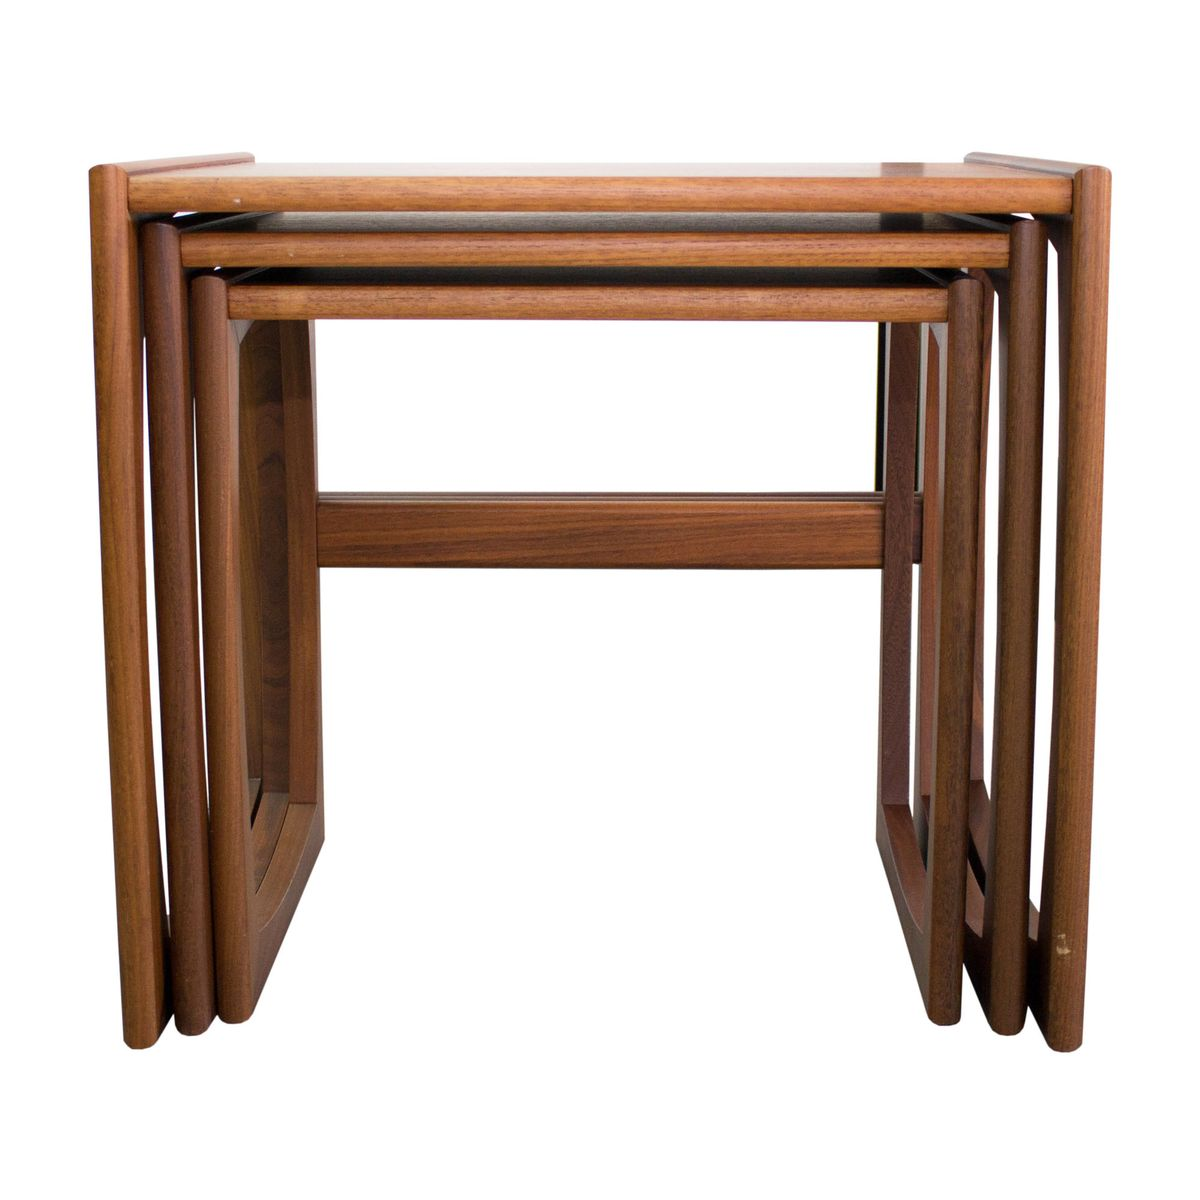 Nesting Tables From G Plan 1960s For Sale At Pamono